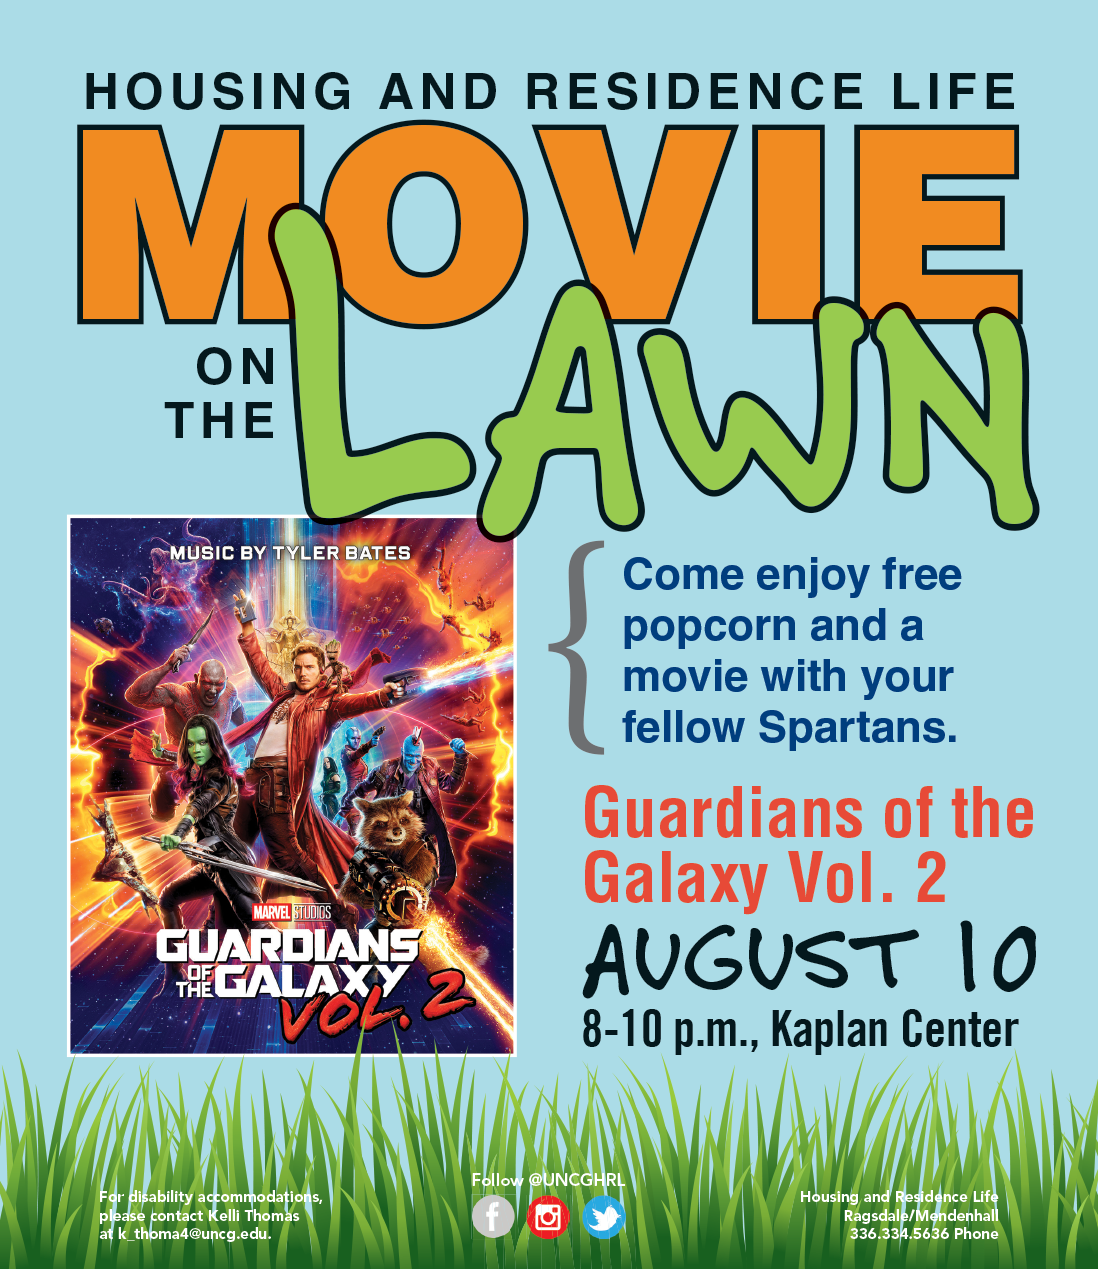 movies on the lawn 2017 - Housing and Residence Life at UNCG